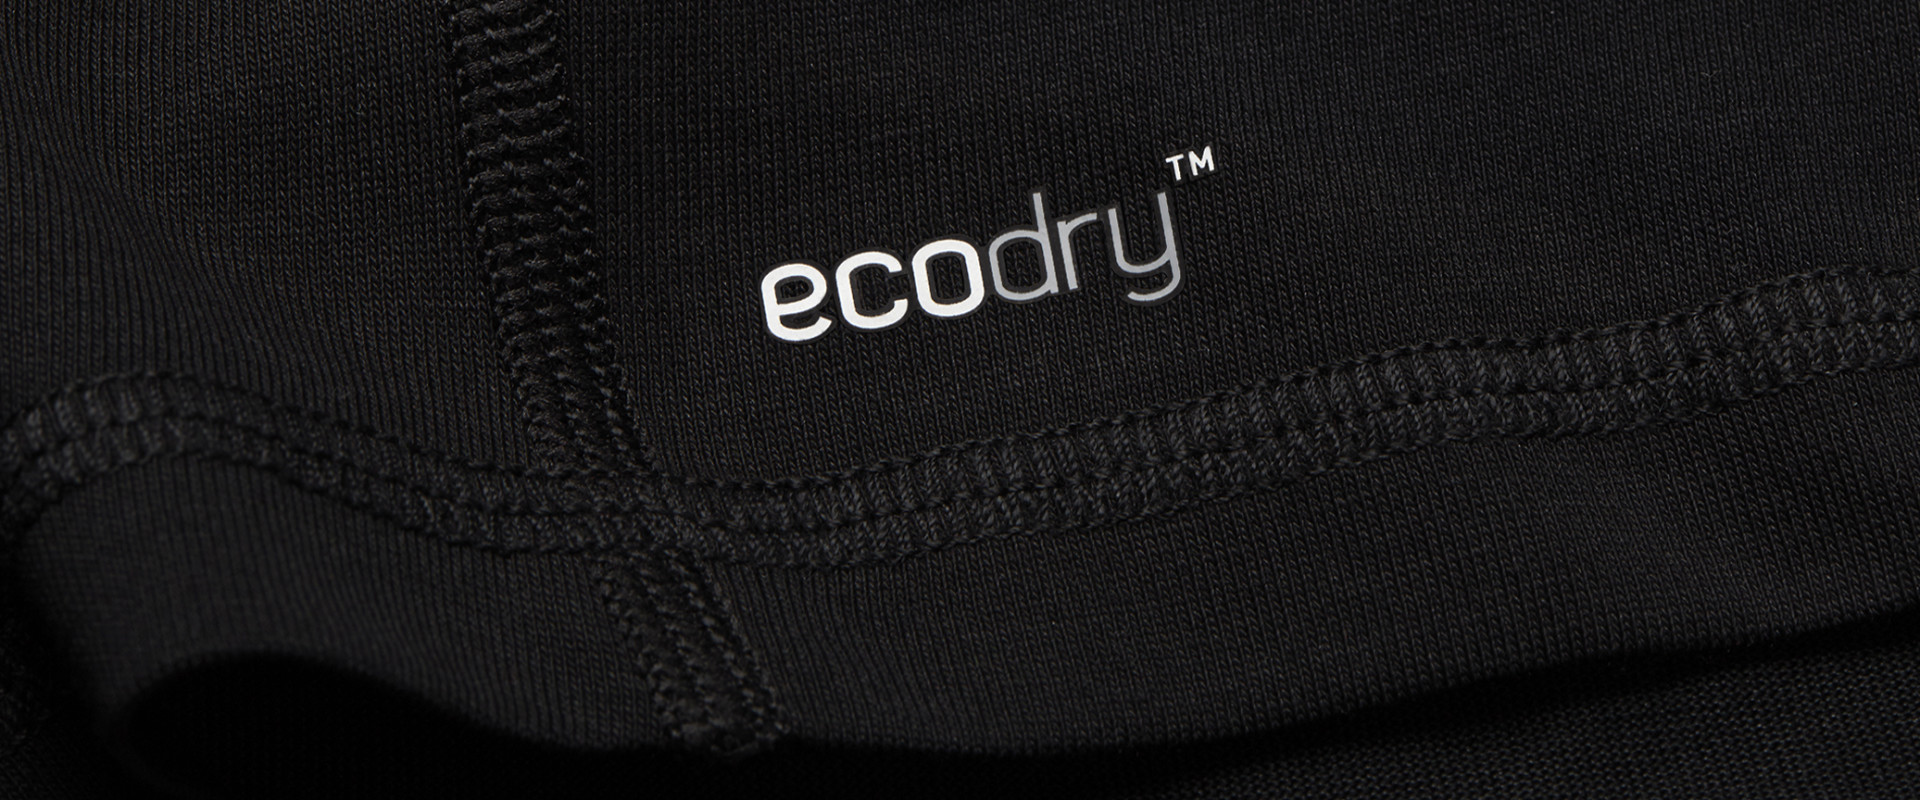 XFeat-ecodry-slide